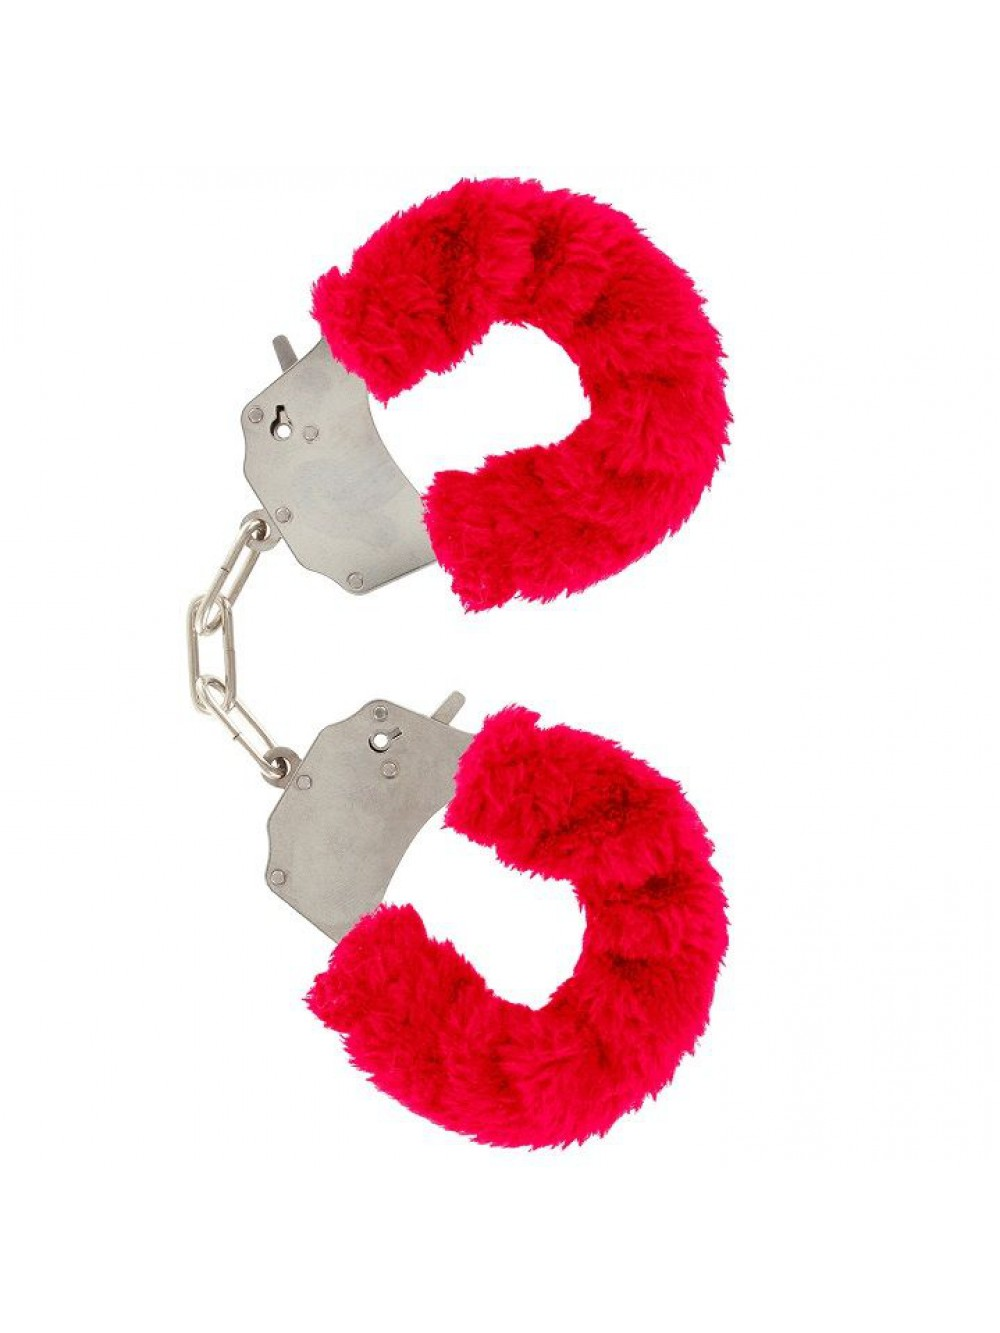 FURRY FUN CUFFS LECHEROUS RED